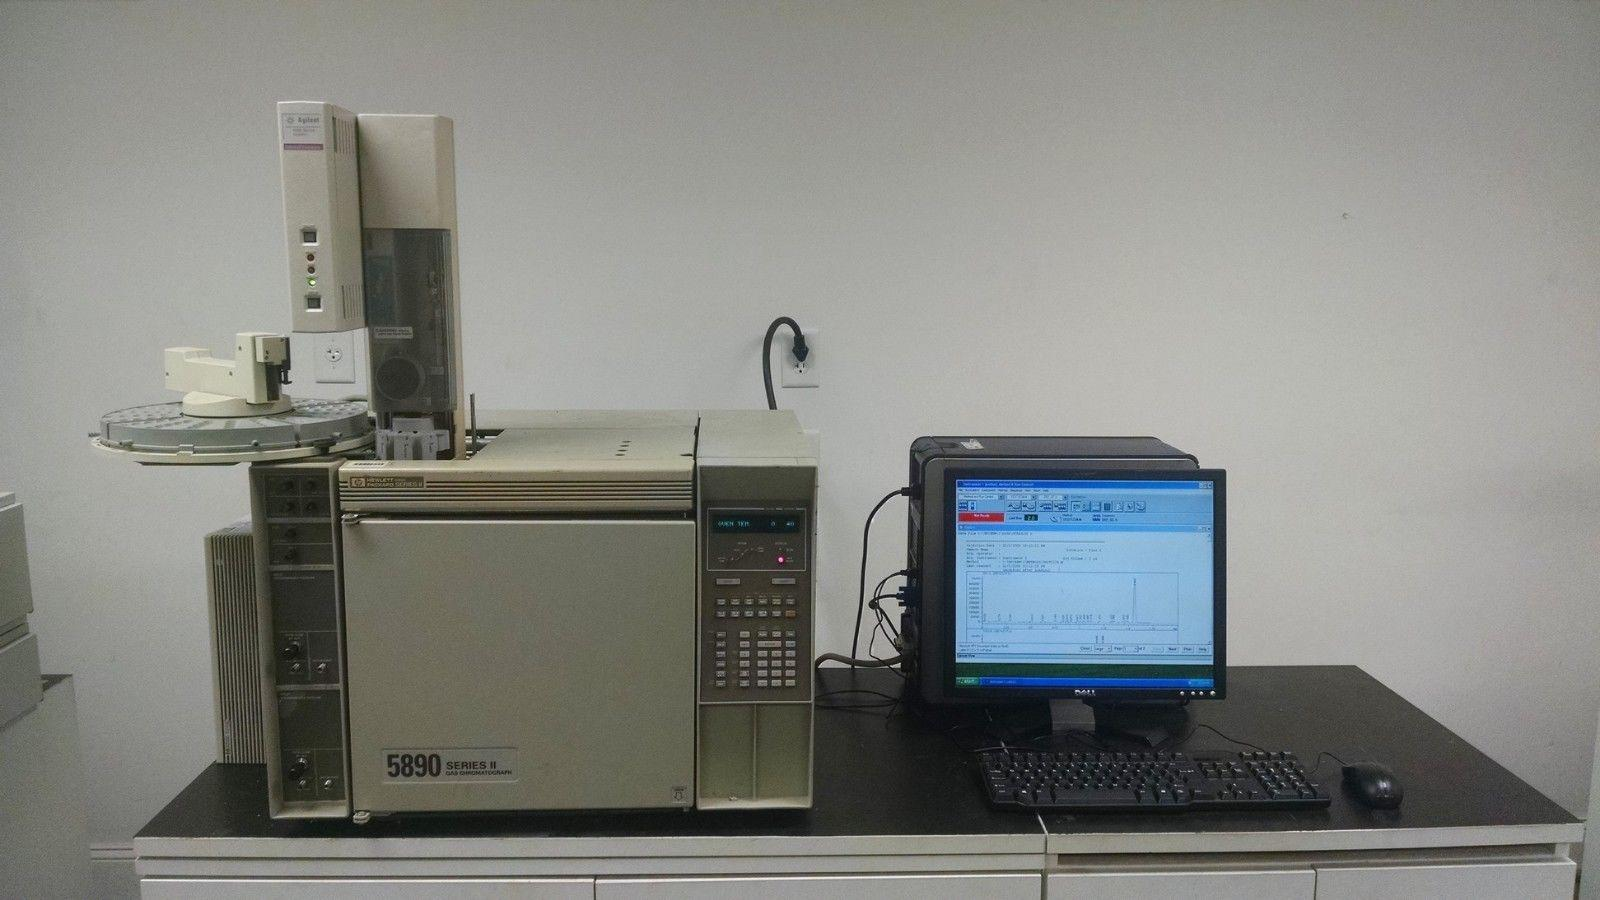 HP 5890 GC with FID, TCD, Autosampler, Computer/Software, Tested, Working